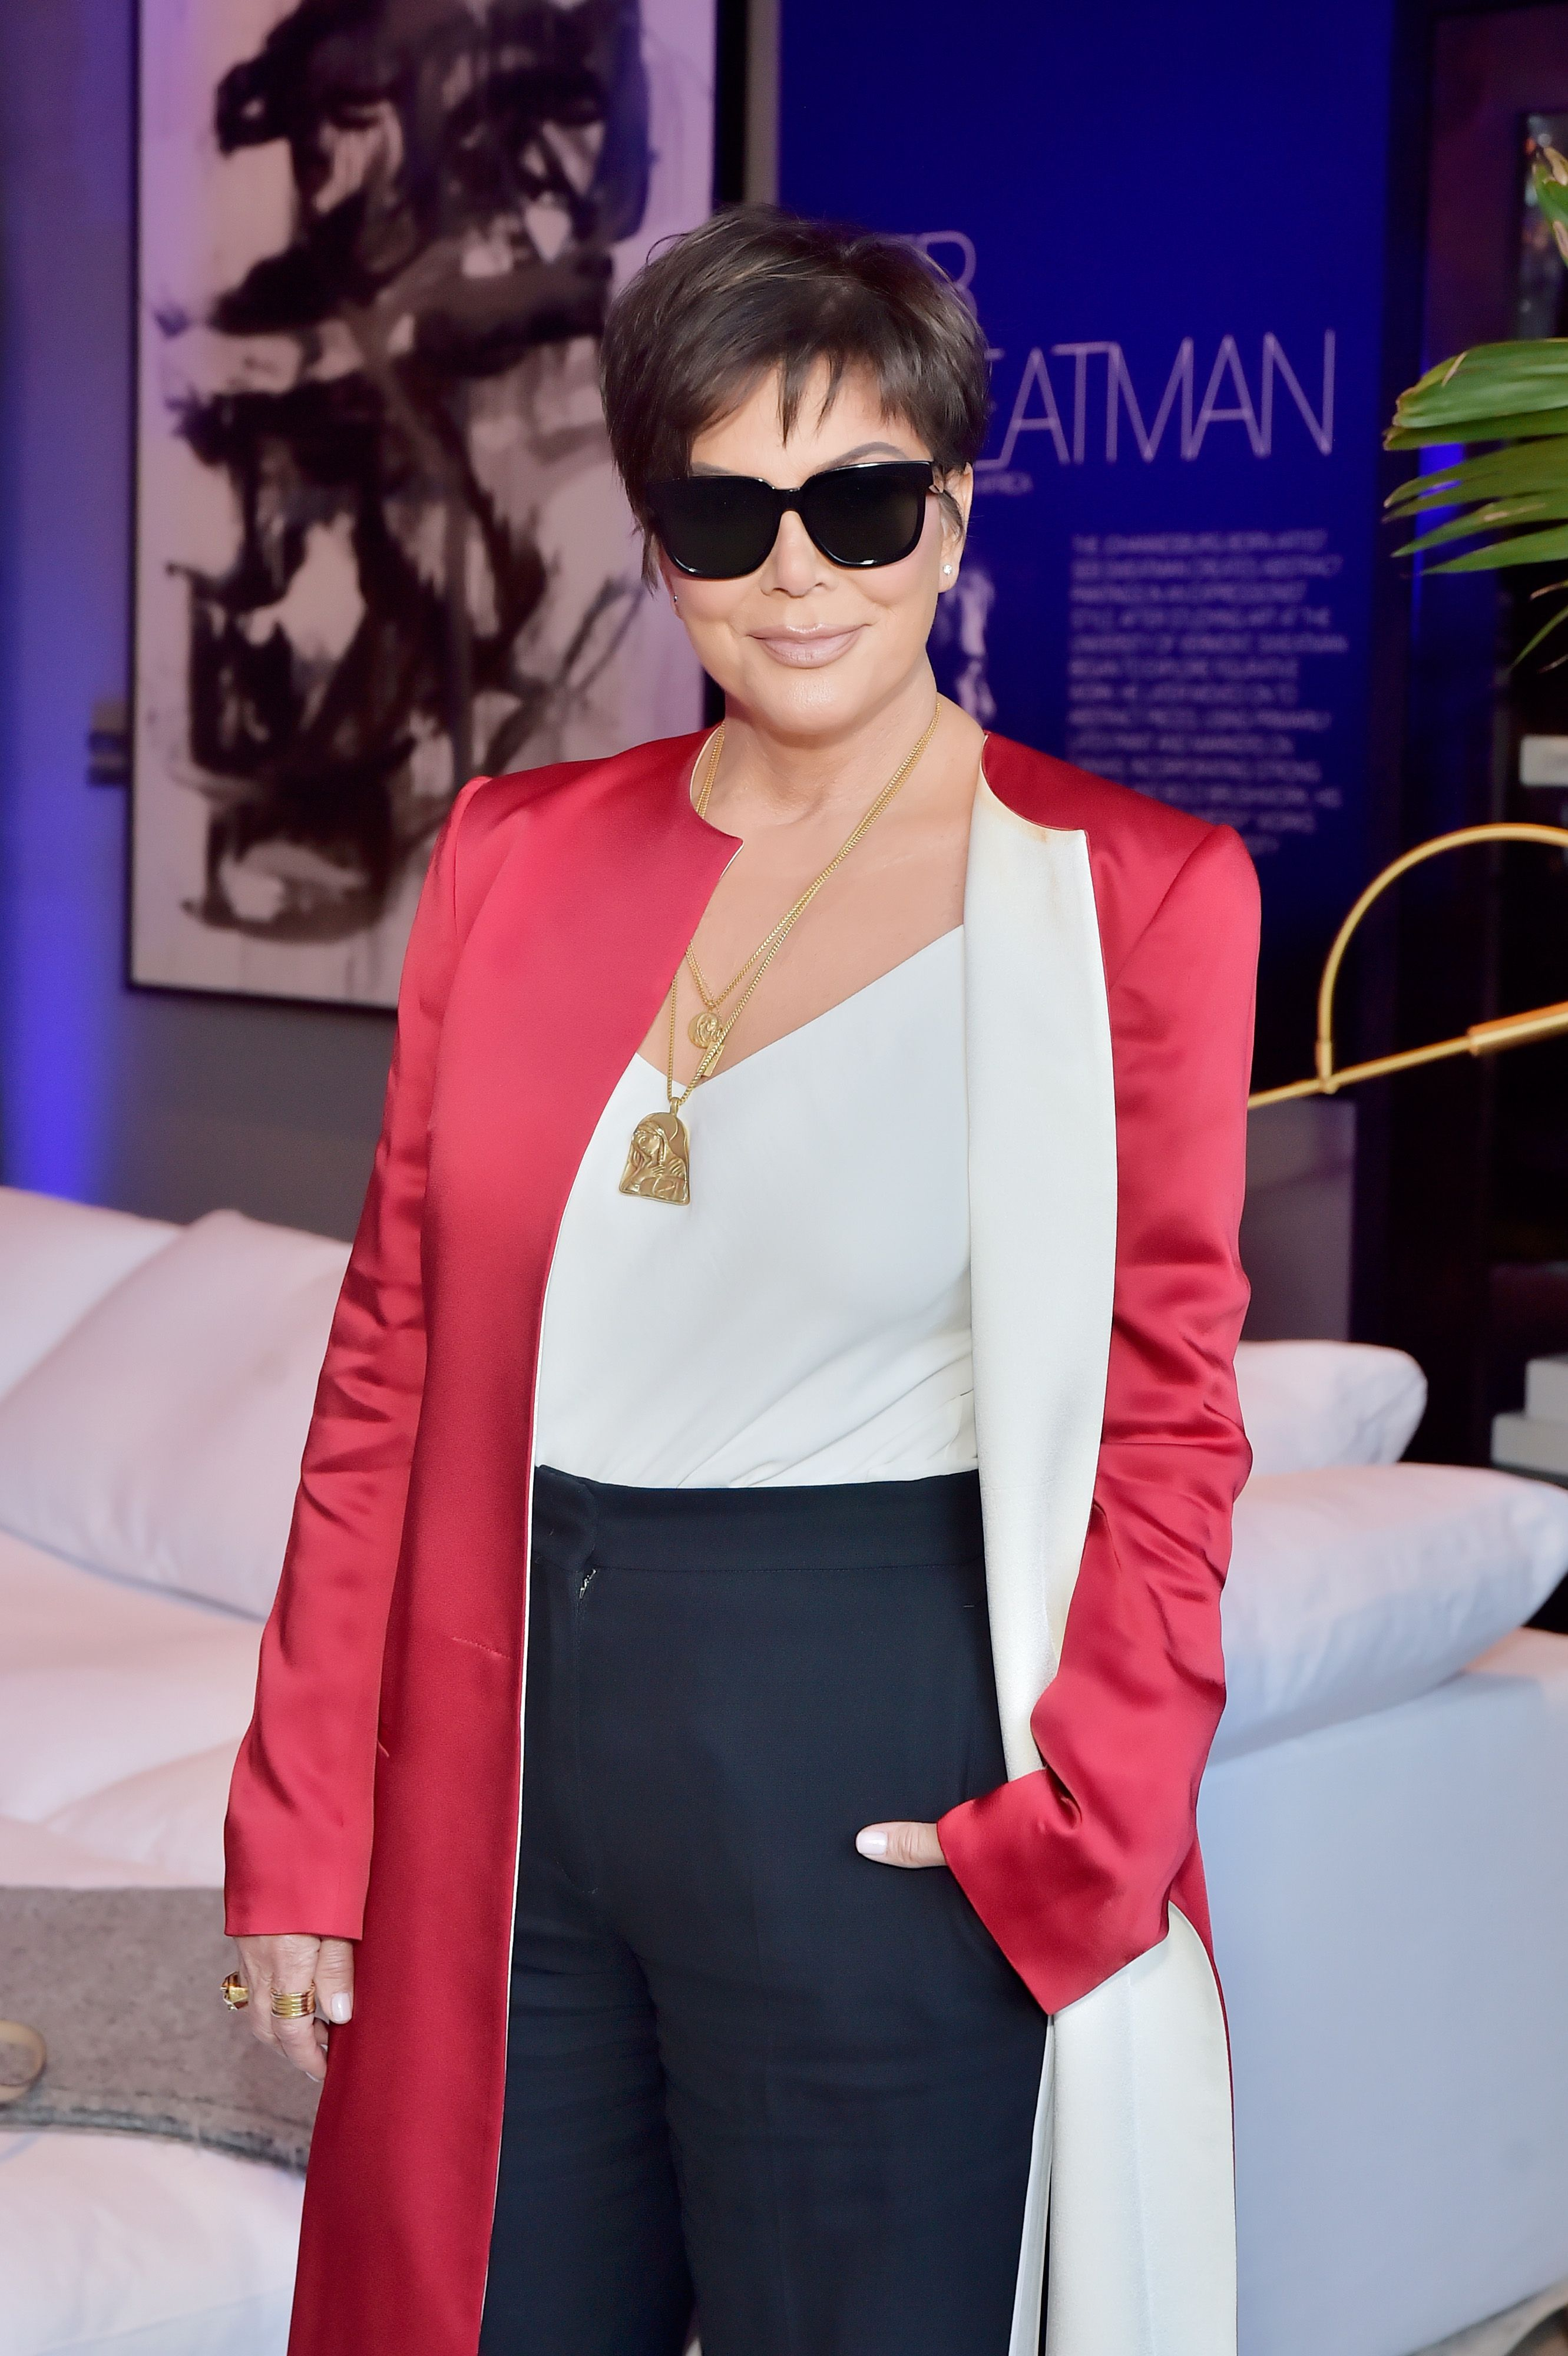 Kris Jenner Opens Up About How She Dealt With The Tristan Thompson/Jordyn Woods Scandal